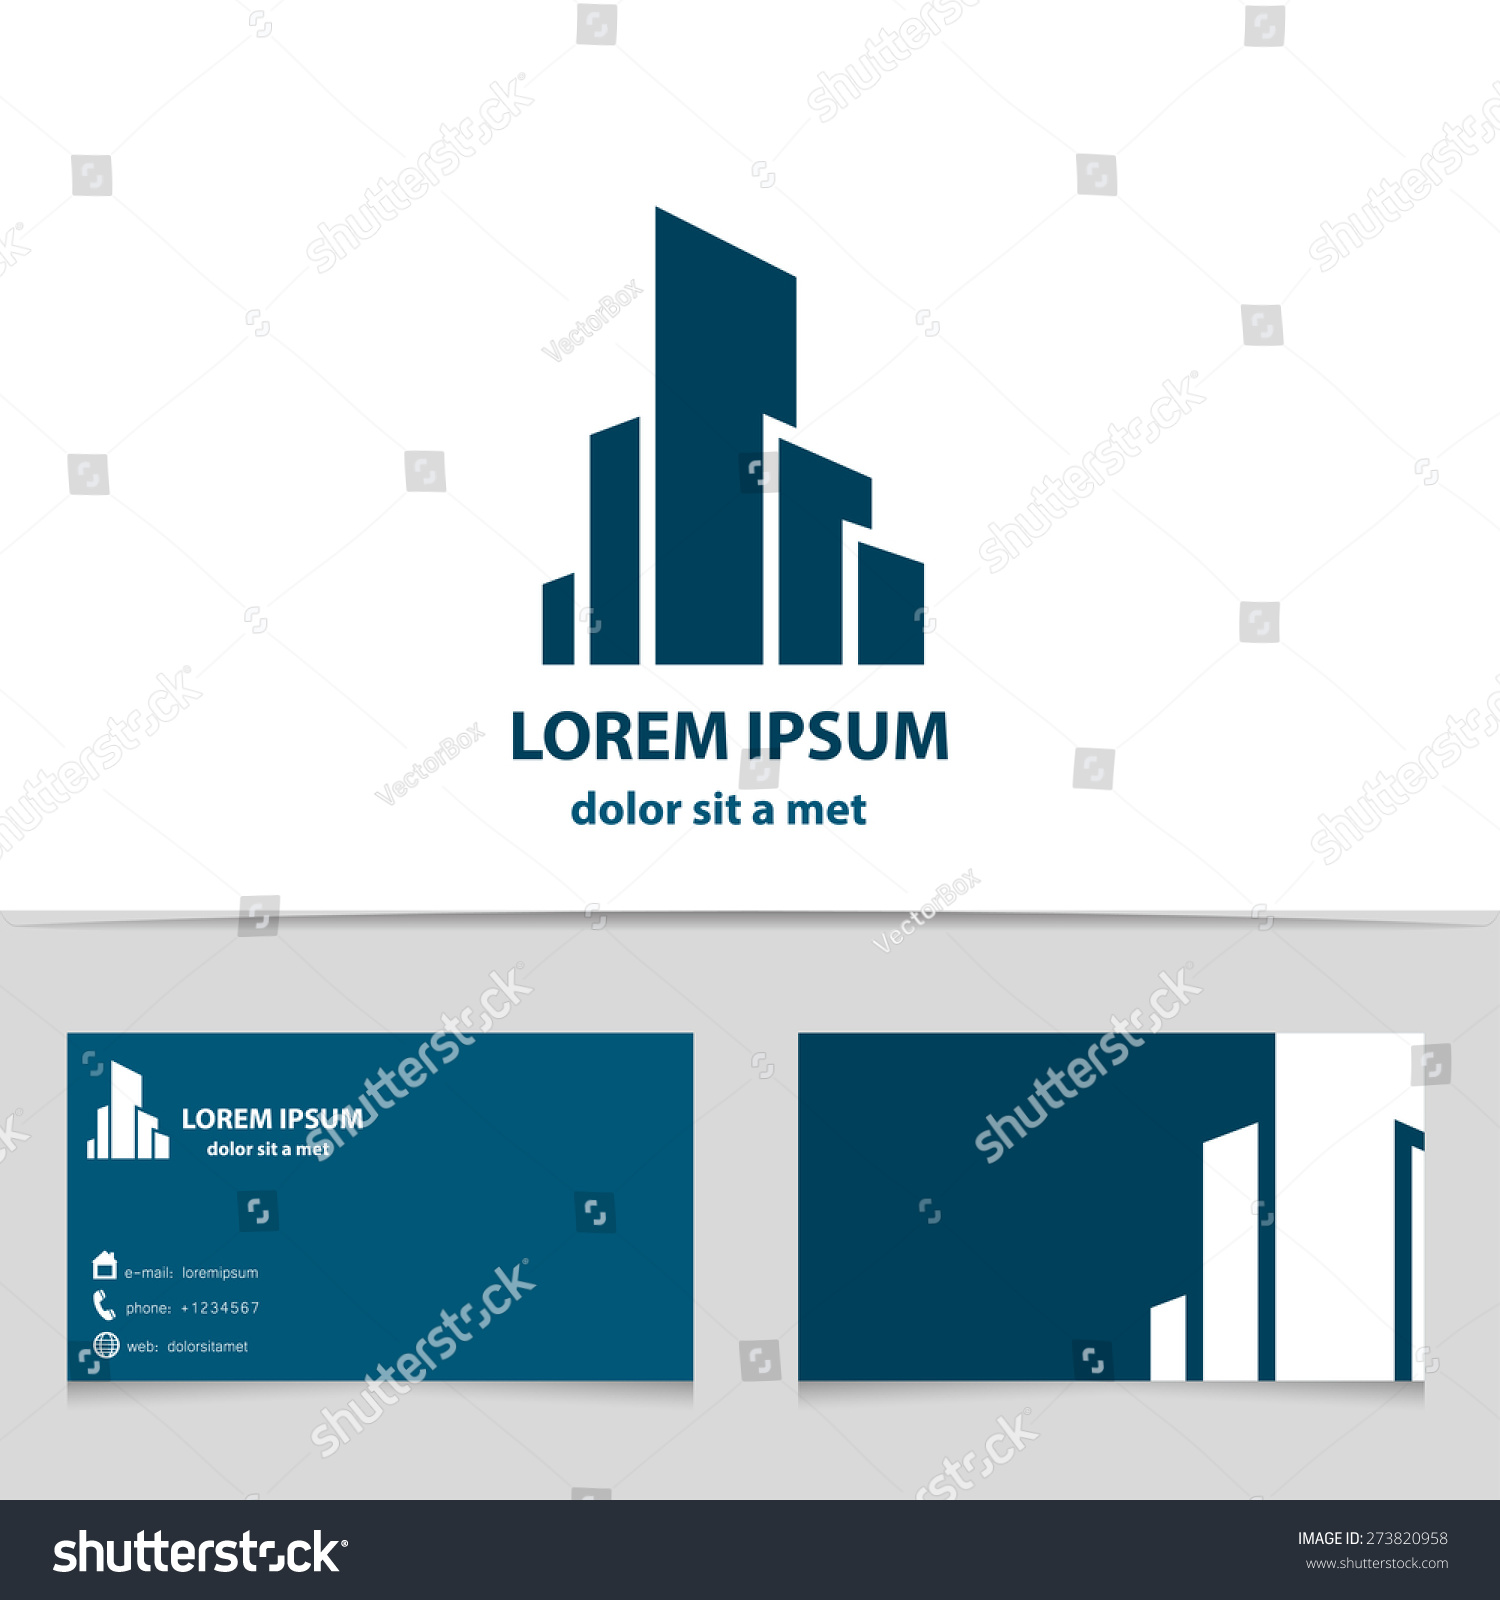 Building construction logo design your company stock for Design company